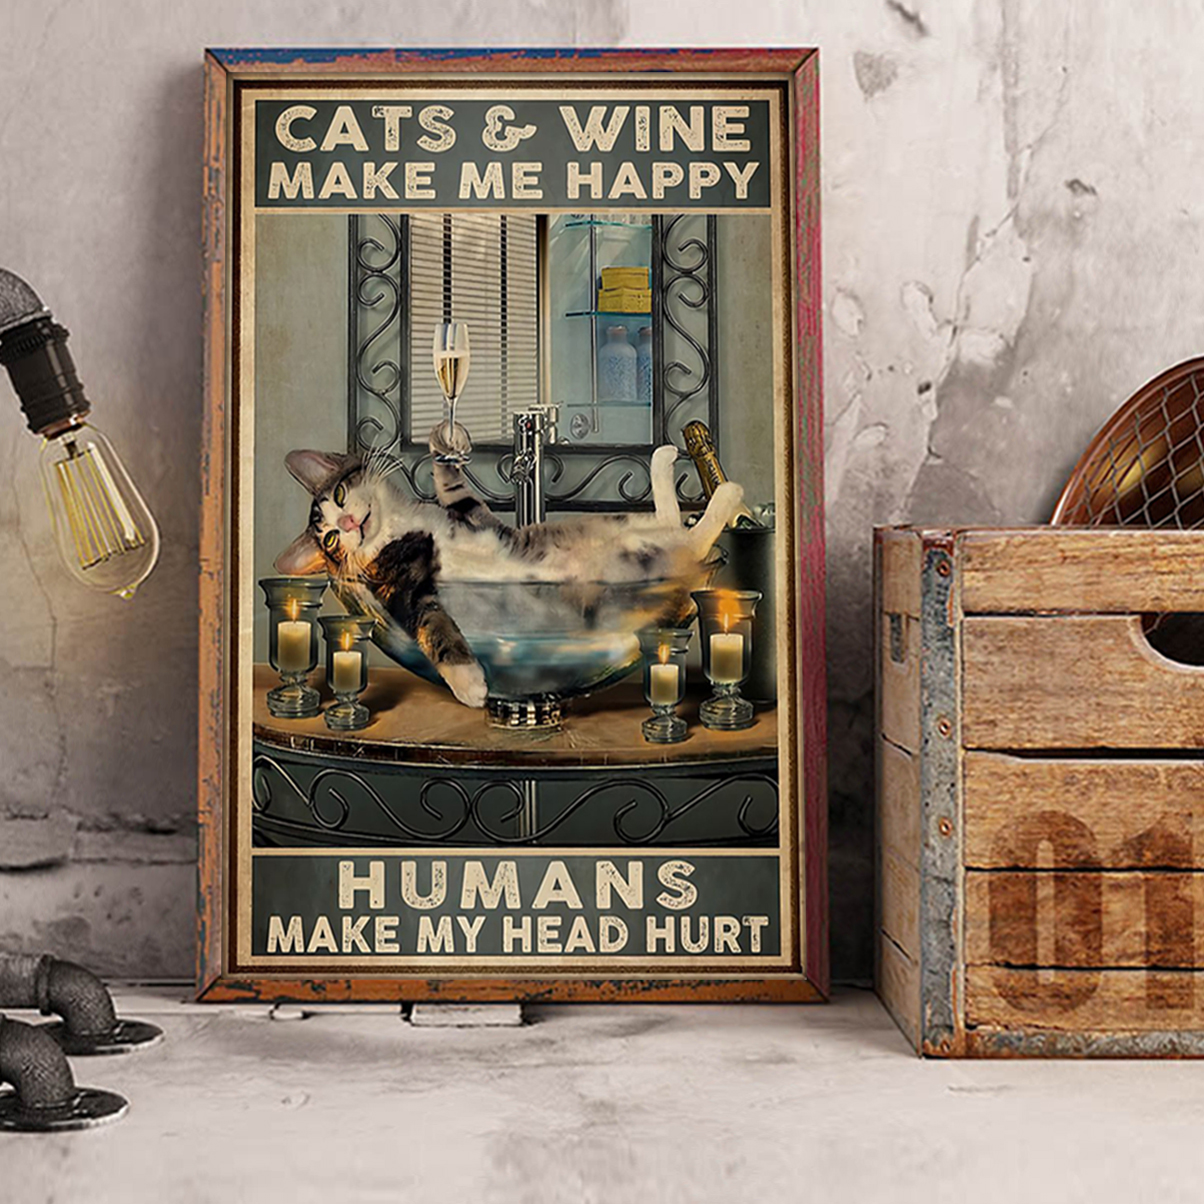 Cats and wine make me happy humans make my head hurt poster A2